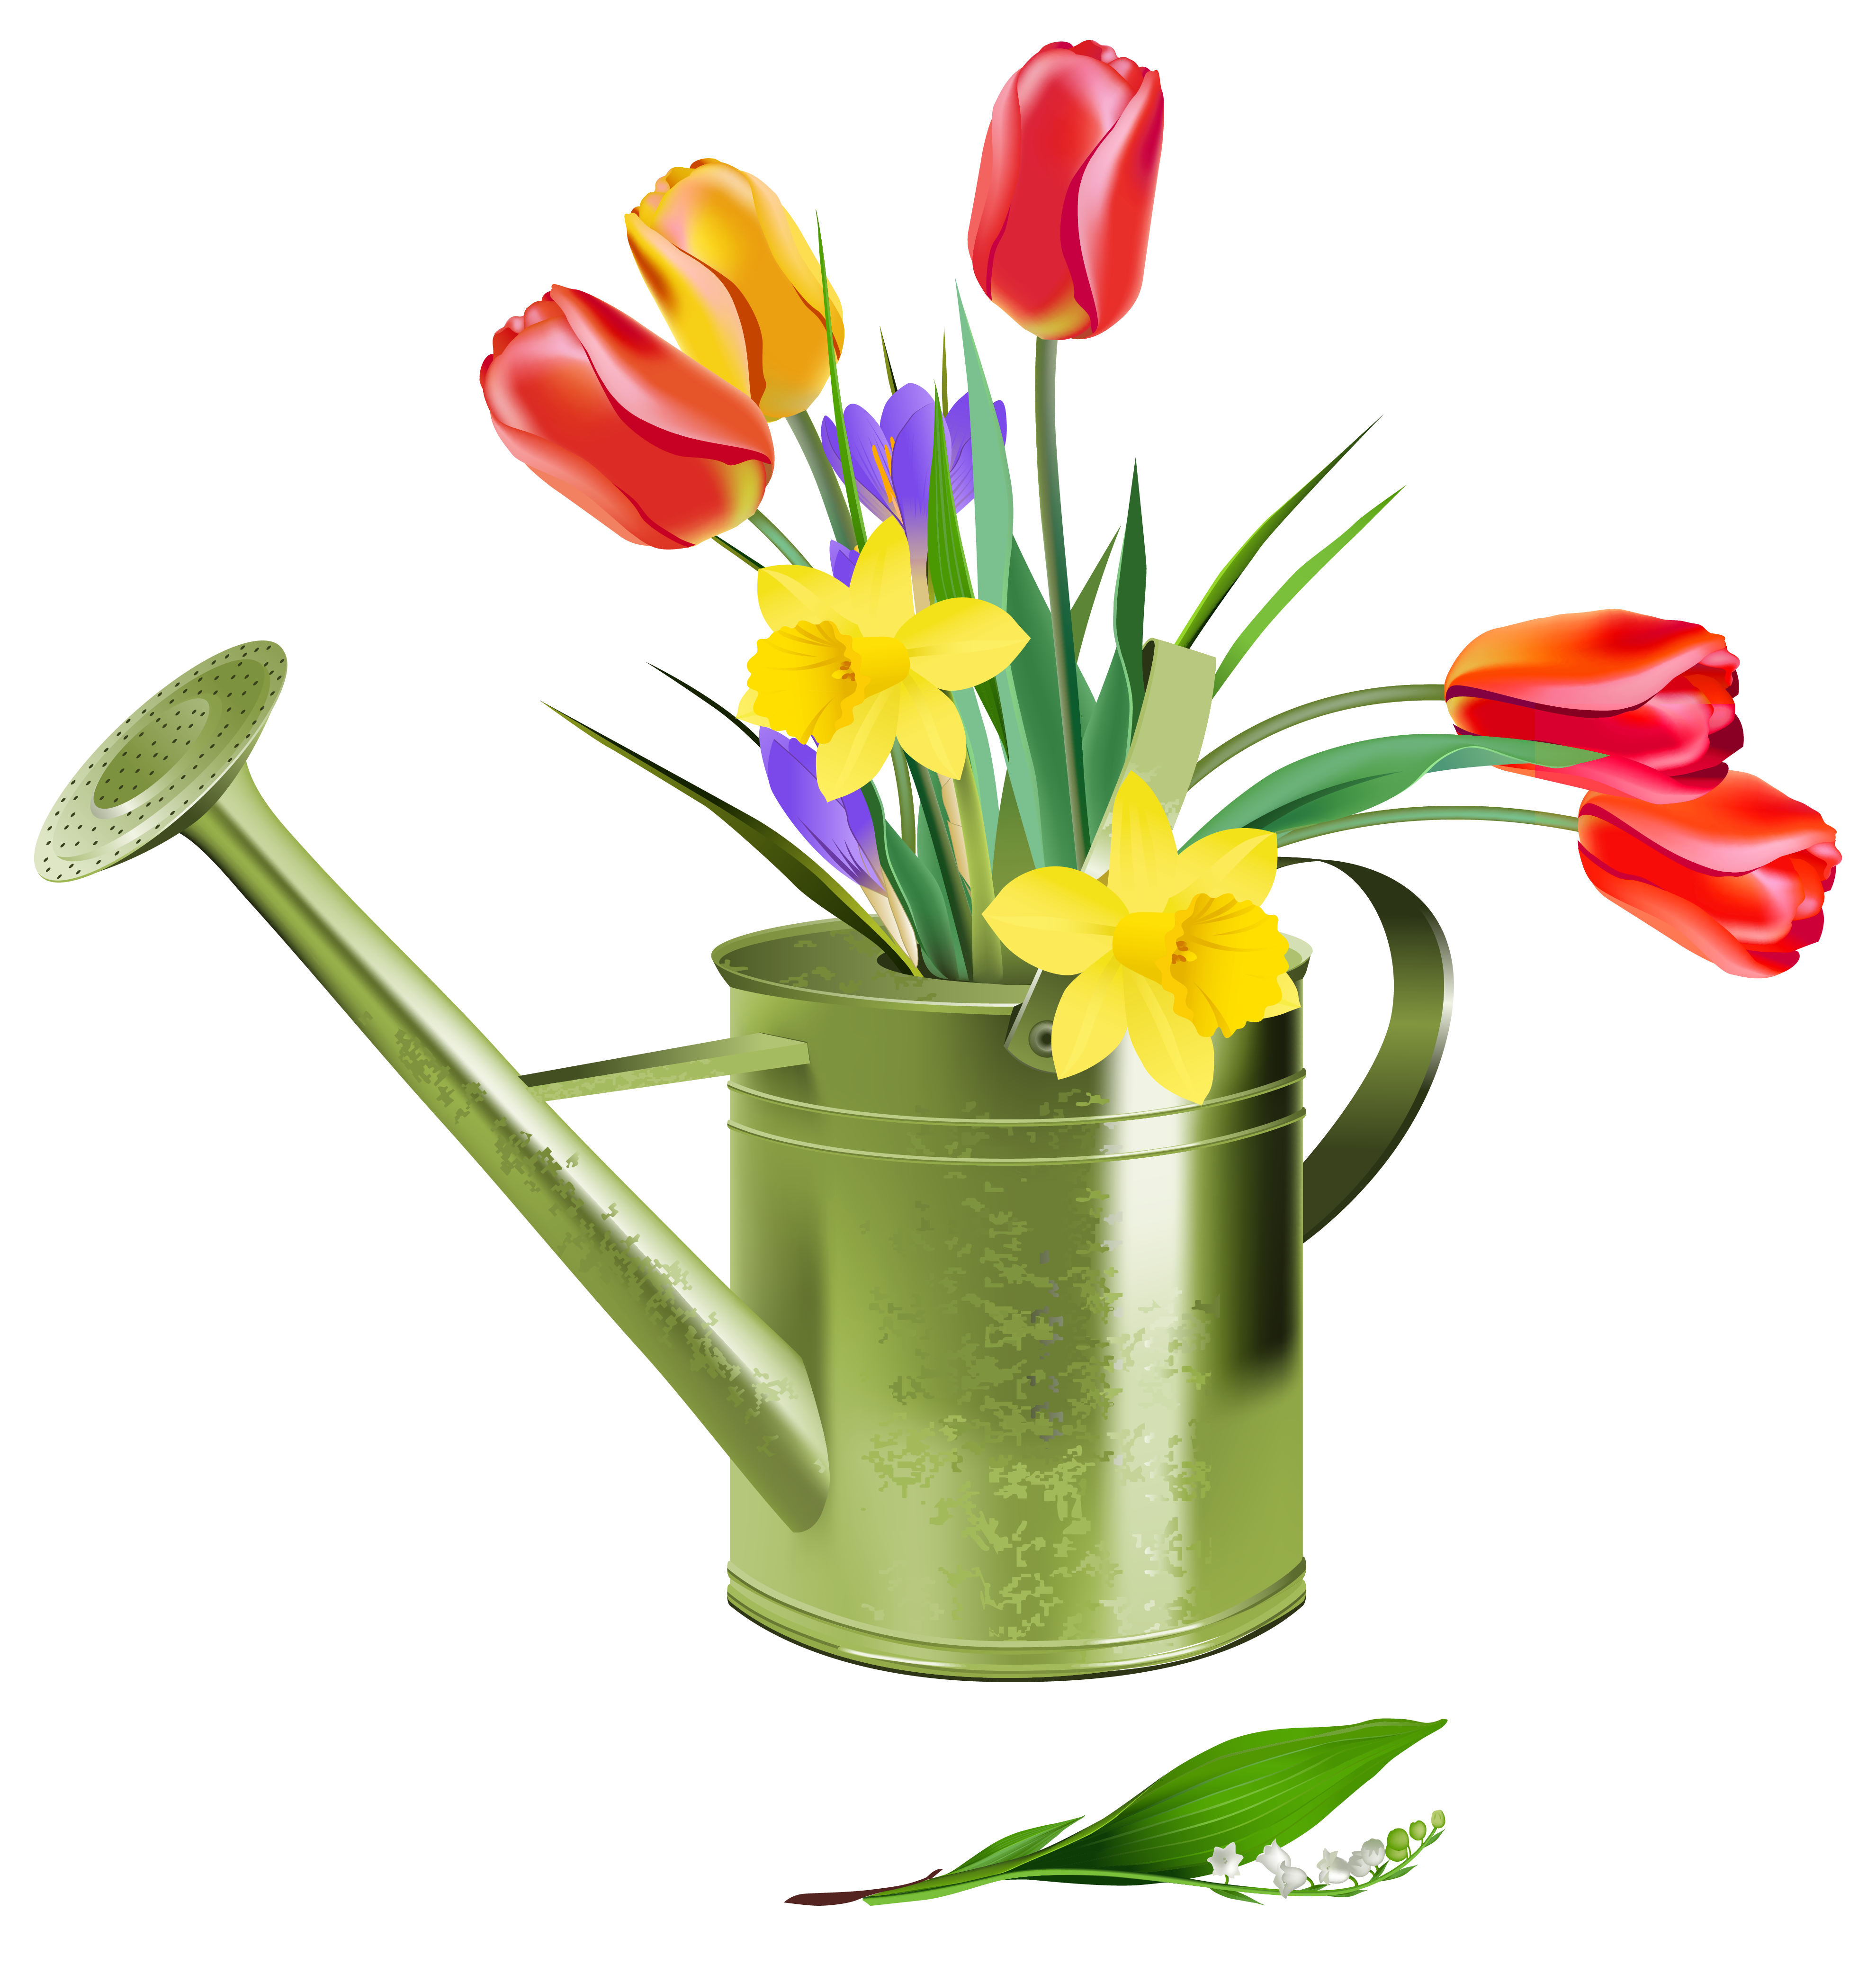 Free clipart for spring flowers clip art black and white library Green Watering Can with Spring Flowers PNG Clipart | Gallery ... clip art black and white library